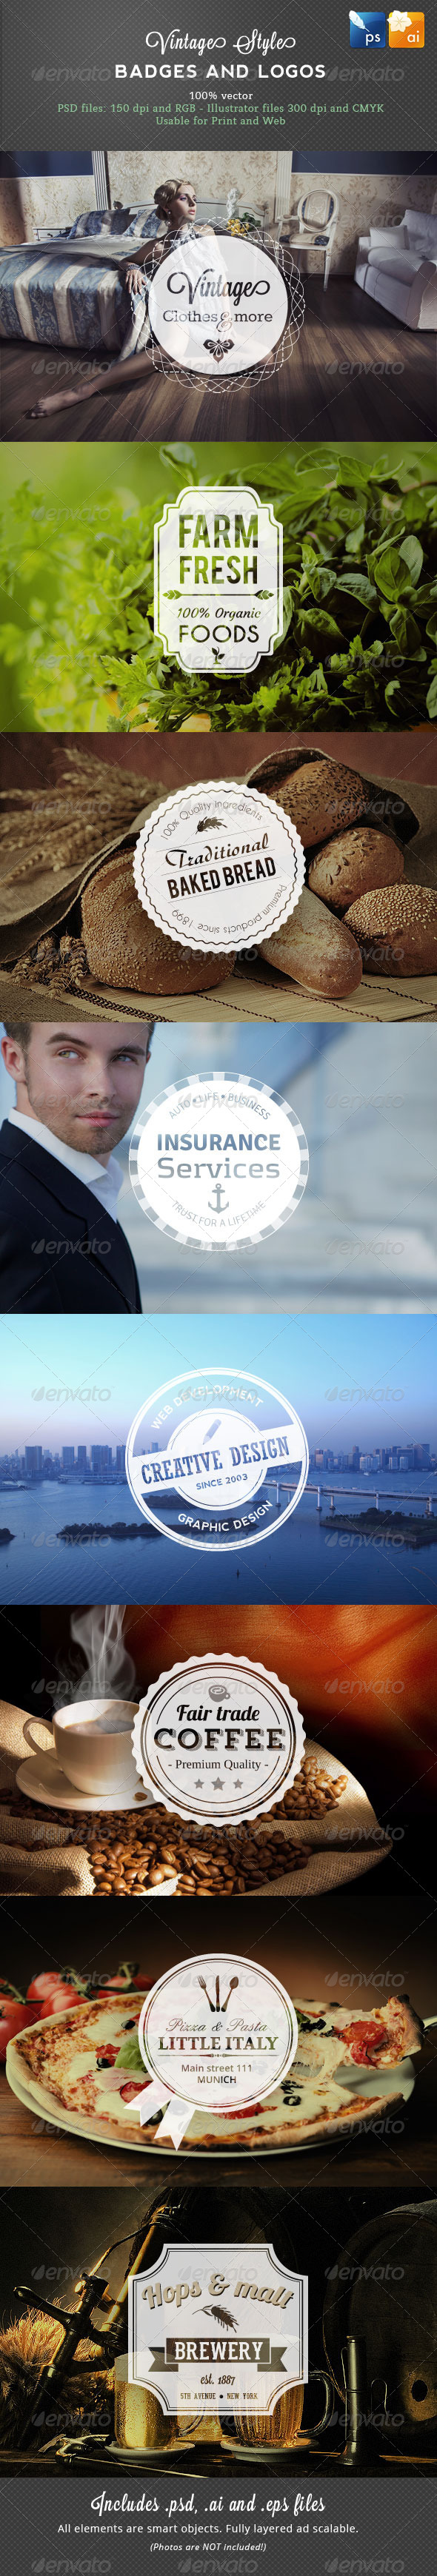 GraphicRiver 8 Vintage Style Badges 4456042